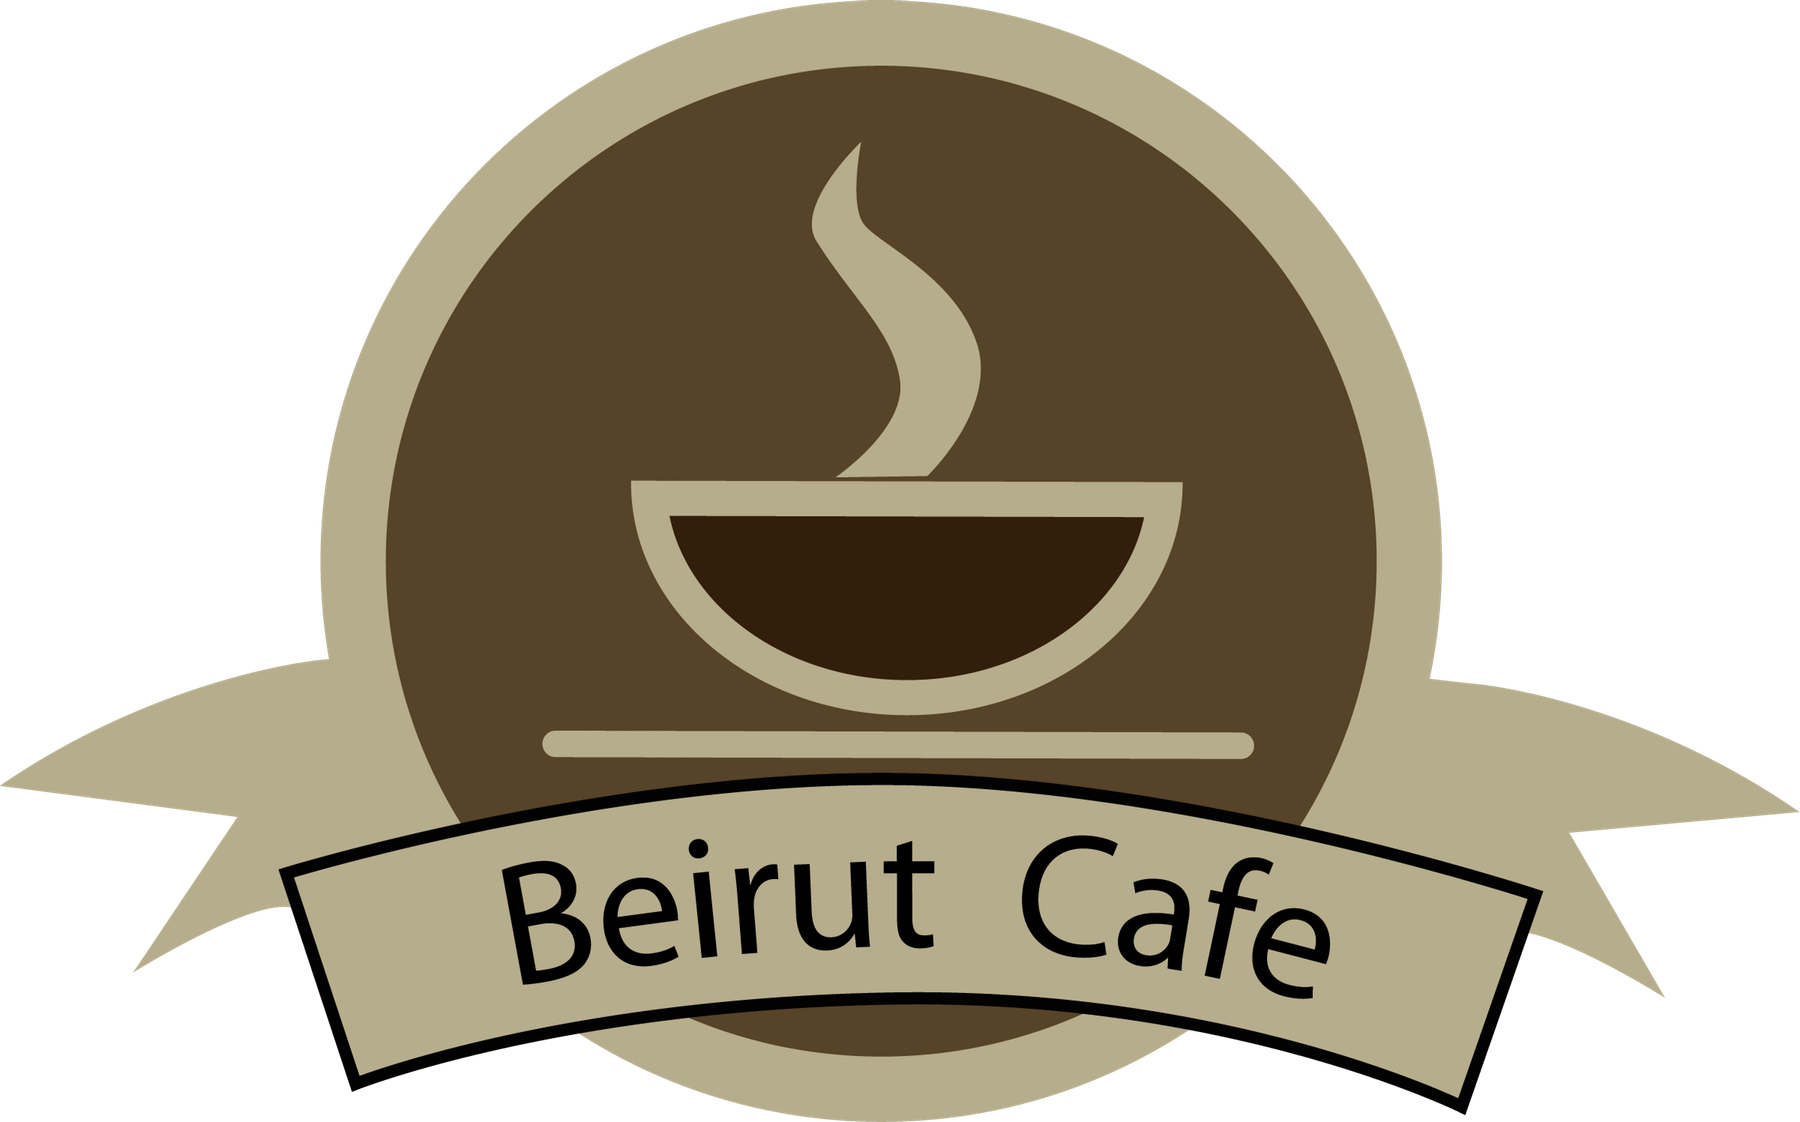 Beirut Cafe Home